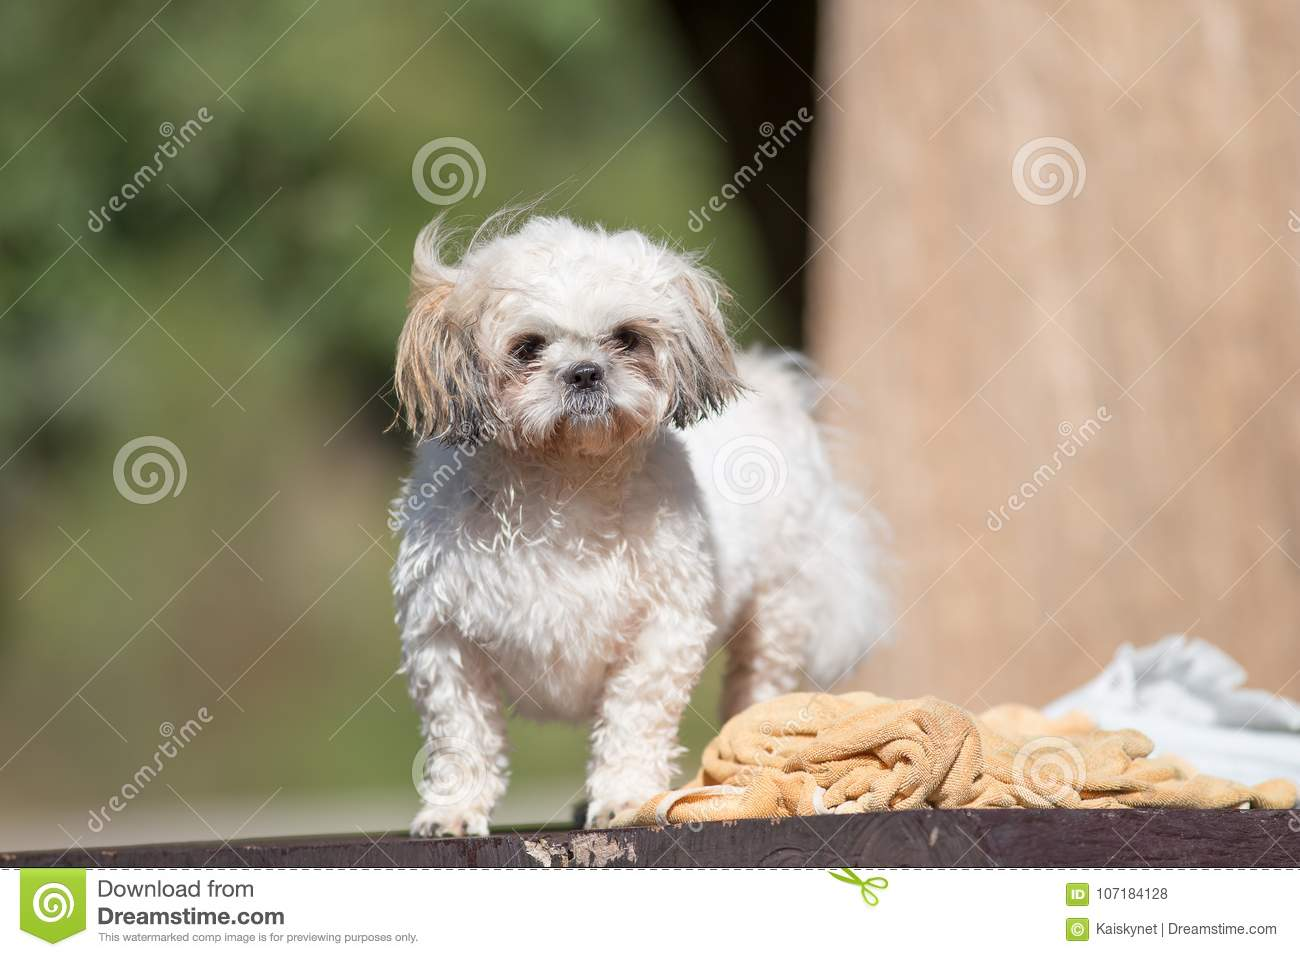 Funny Cute Shih Tzu Puppy Dog After Bath Stock Photo Image Of Animal Clinic 107184128